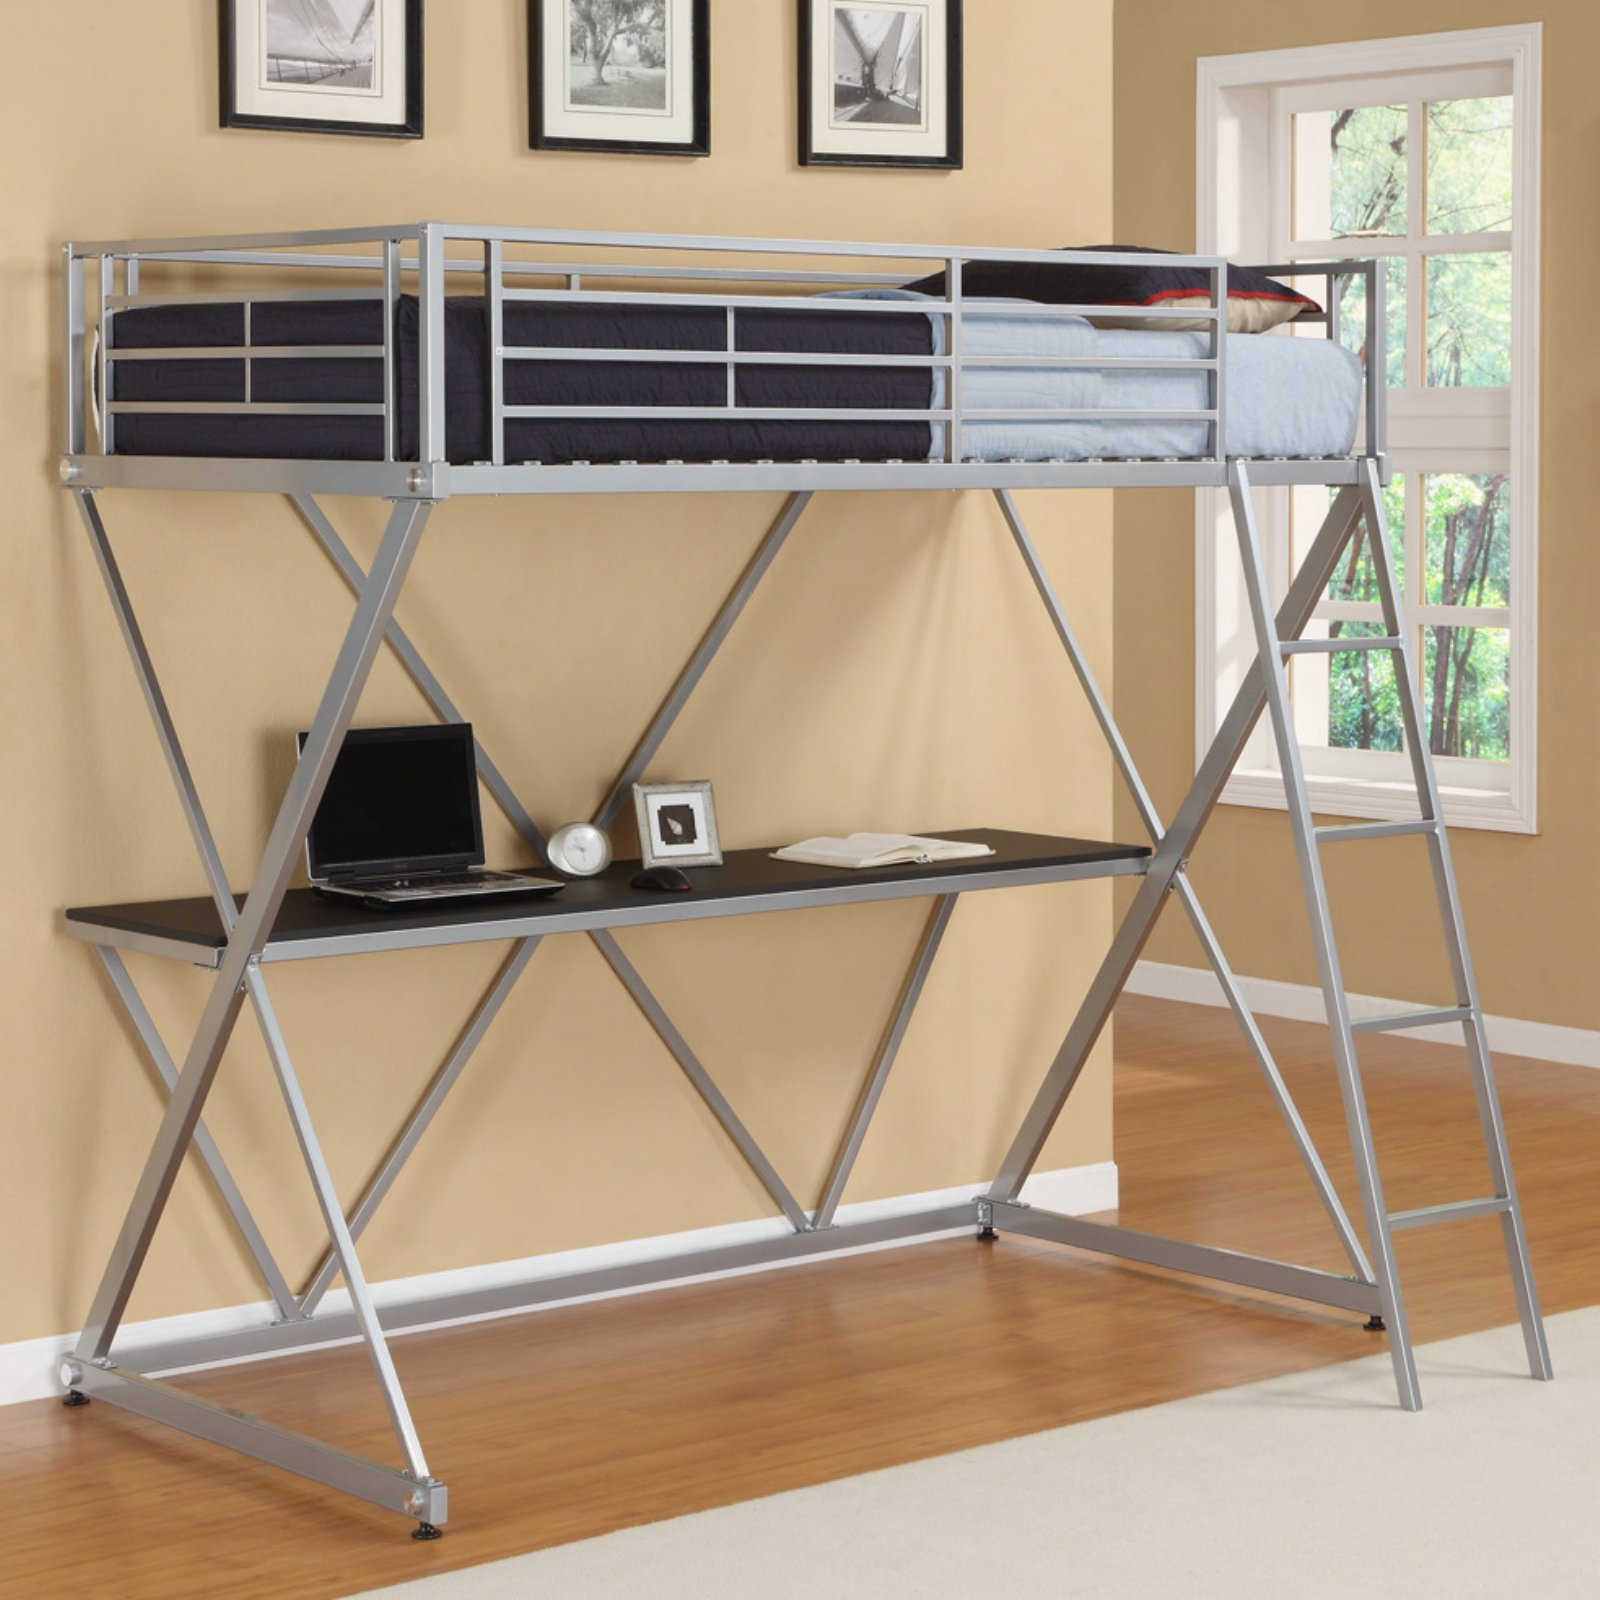 metal bunk bed with desk underneath. DHP Metal Loft Bed Over Desk Workstation Twin Size, Silver Metal Bunk Bed With Desk Underneath E